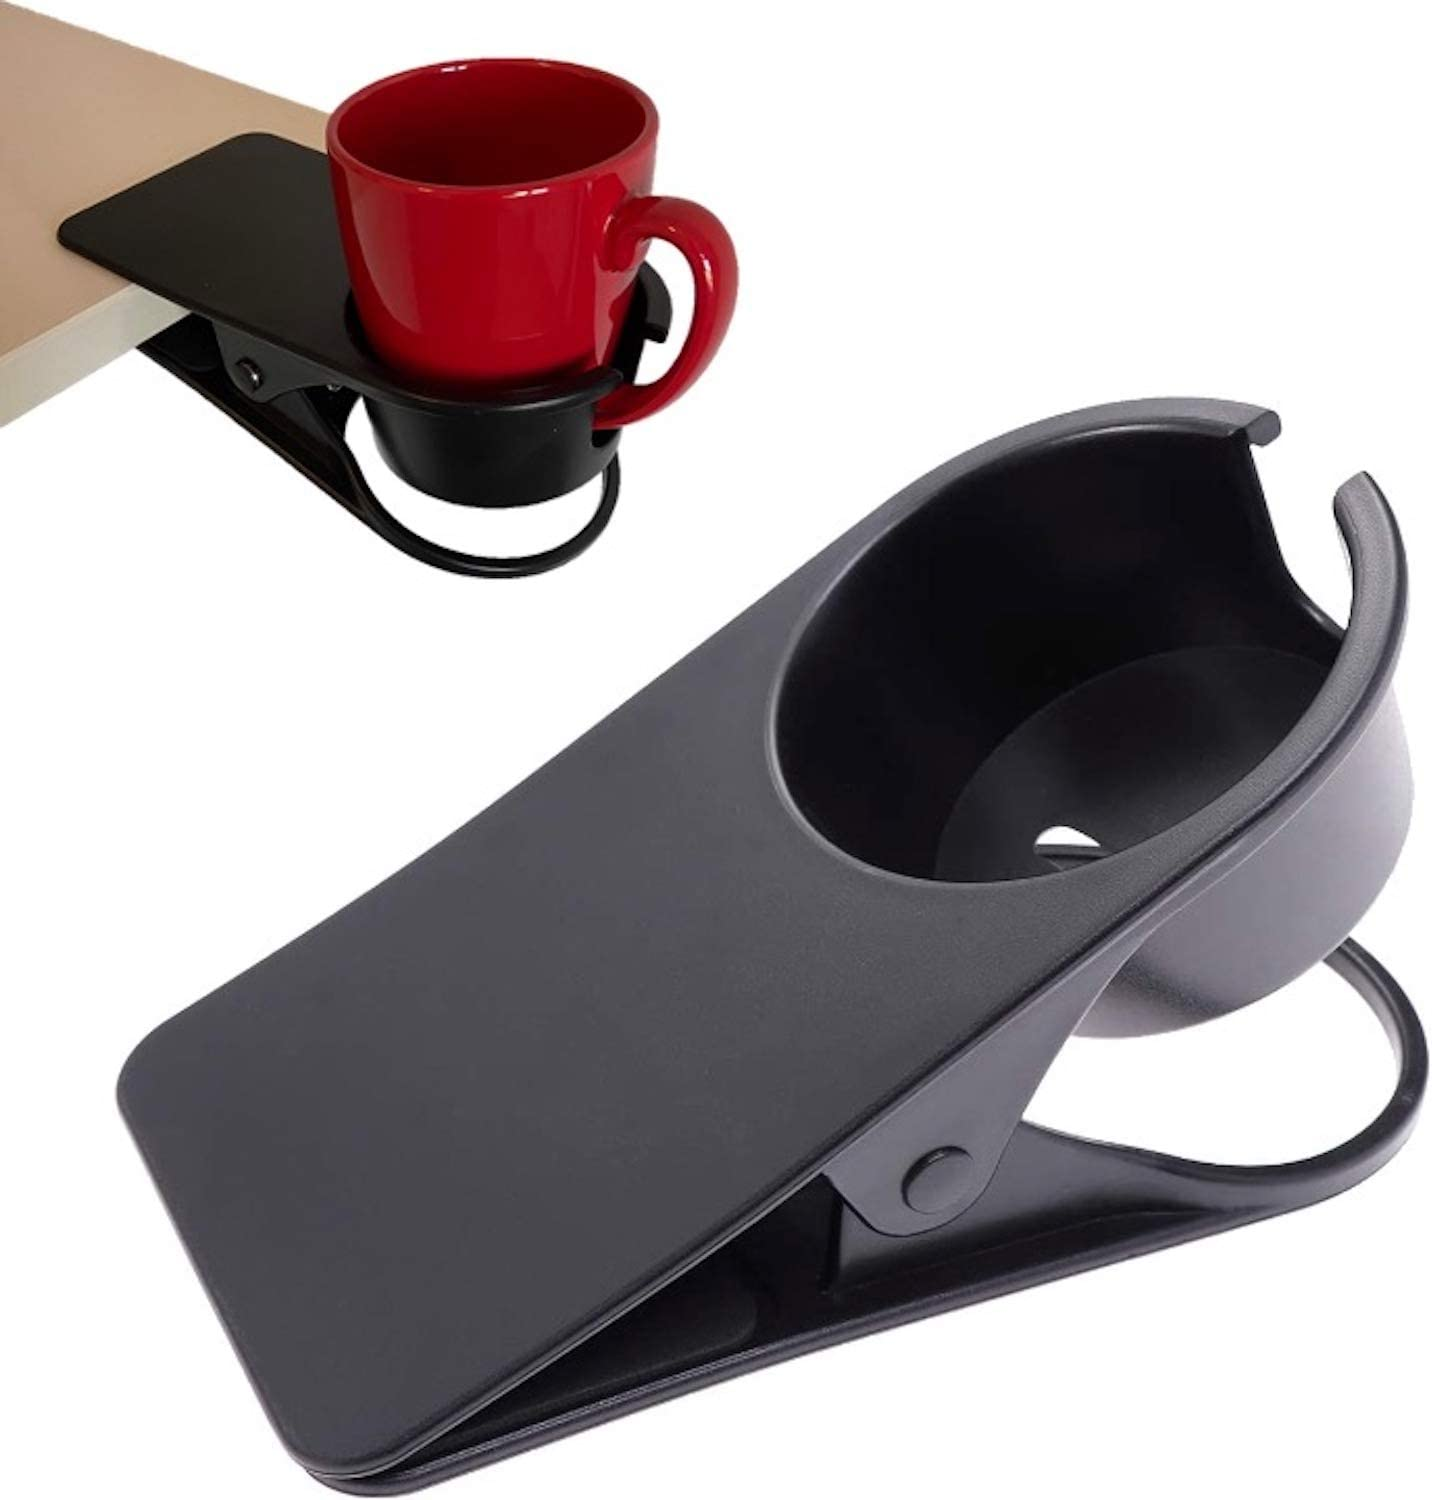 SMAHT Sturdy Clamp On Cup Holder For Table - Desk Cup Holder Clamp For Cups, Water Bottles, Soda Cans Coffee Mugs - Table Cup Holder For Desk To Save Valuable Desk Space - Clip On Cup Holder For Chair